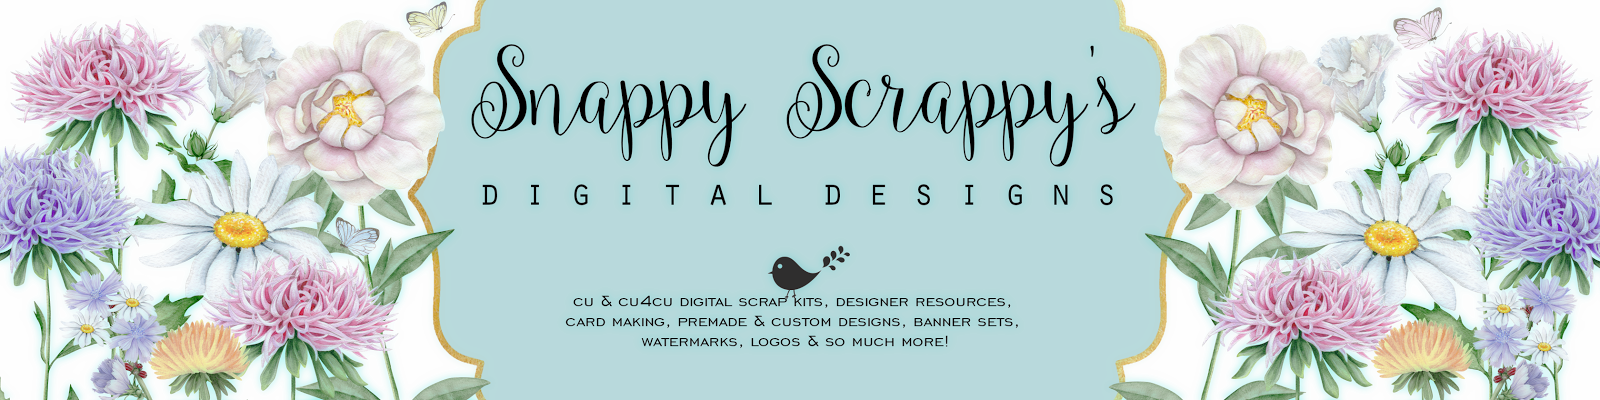 Snappyscrappy's Digital Designs